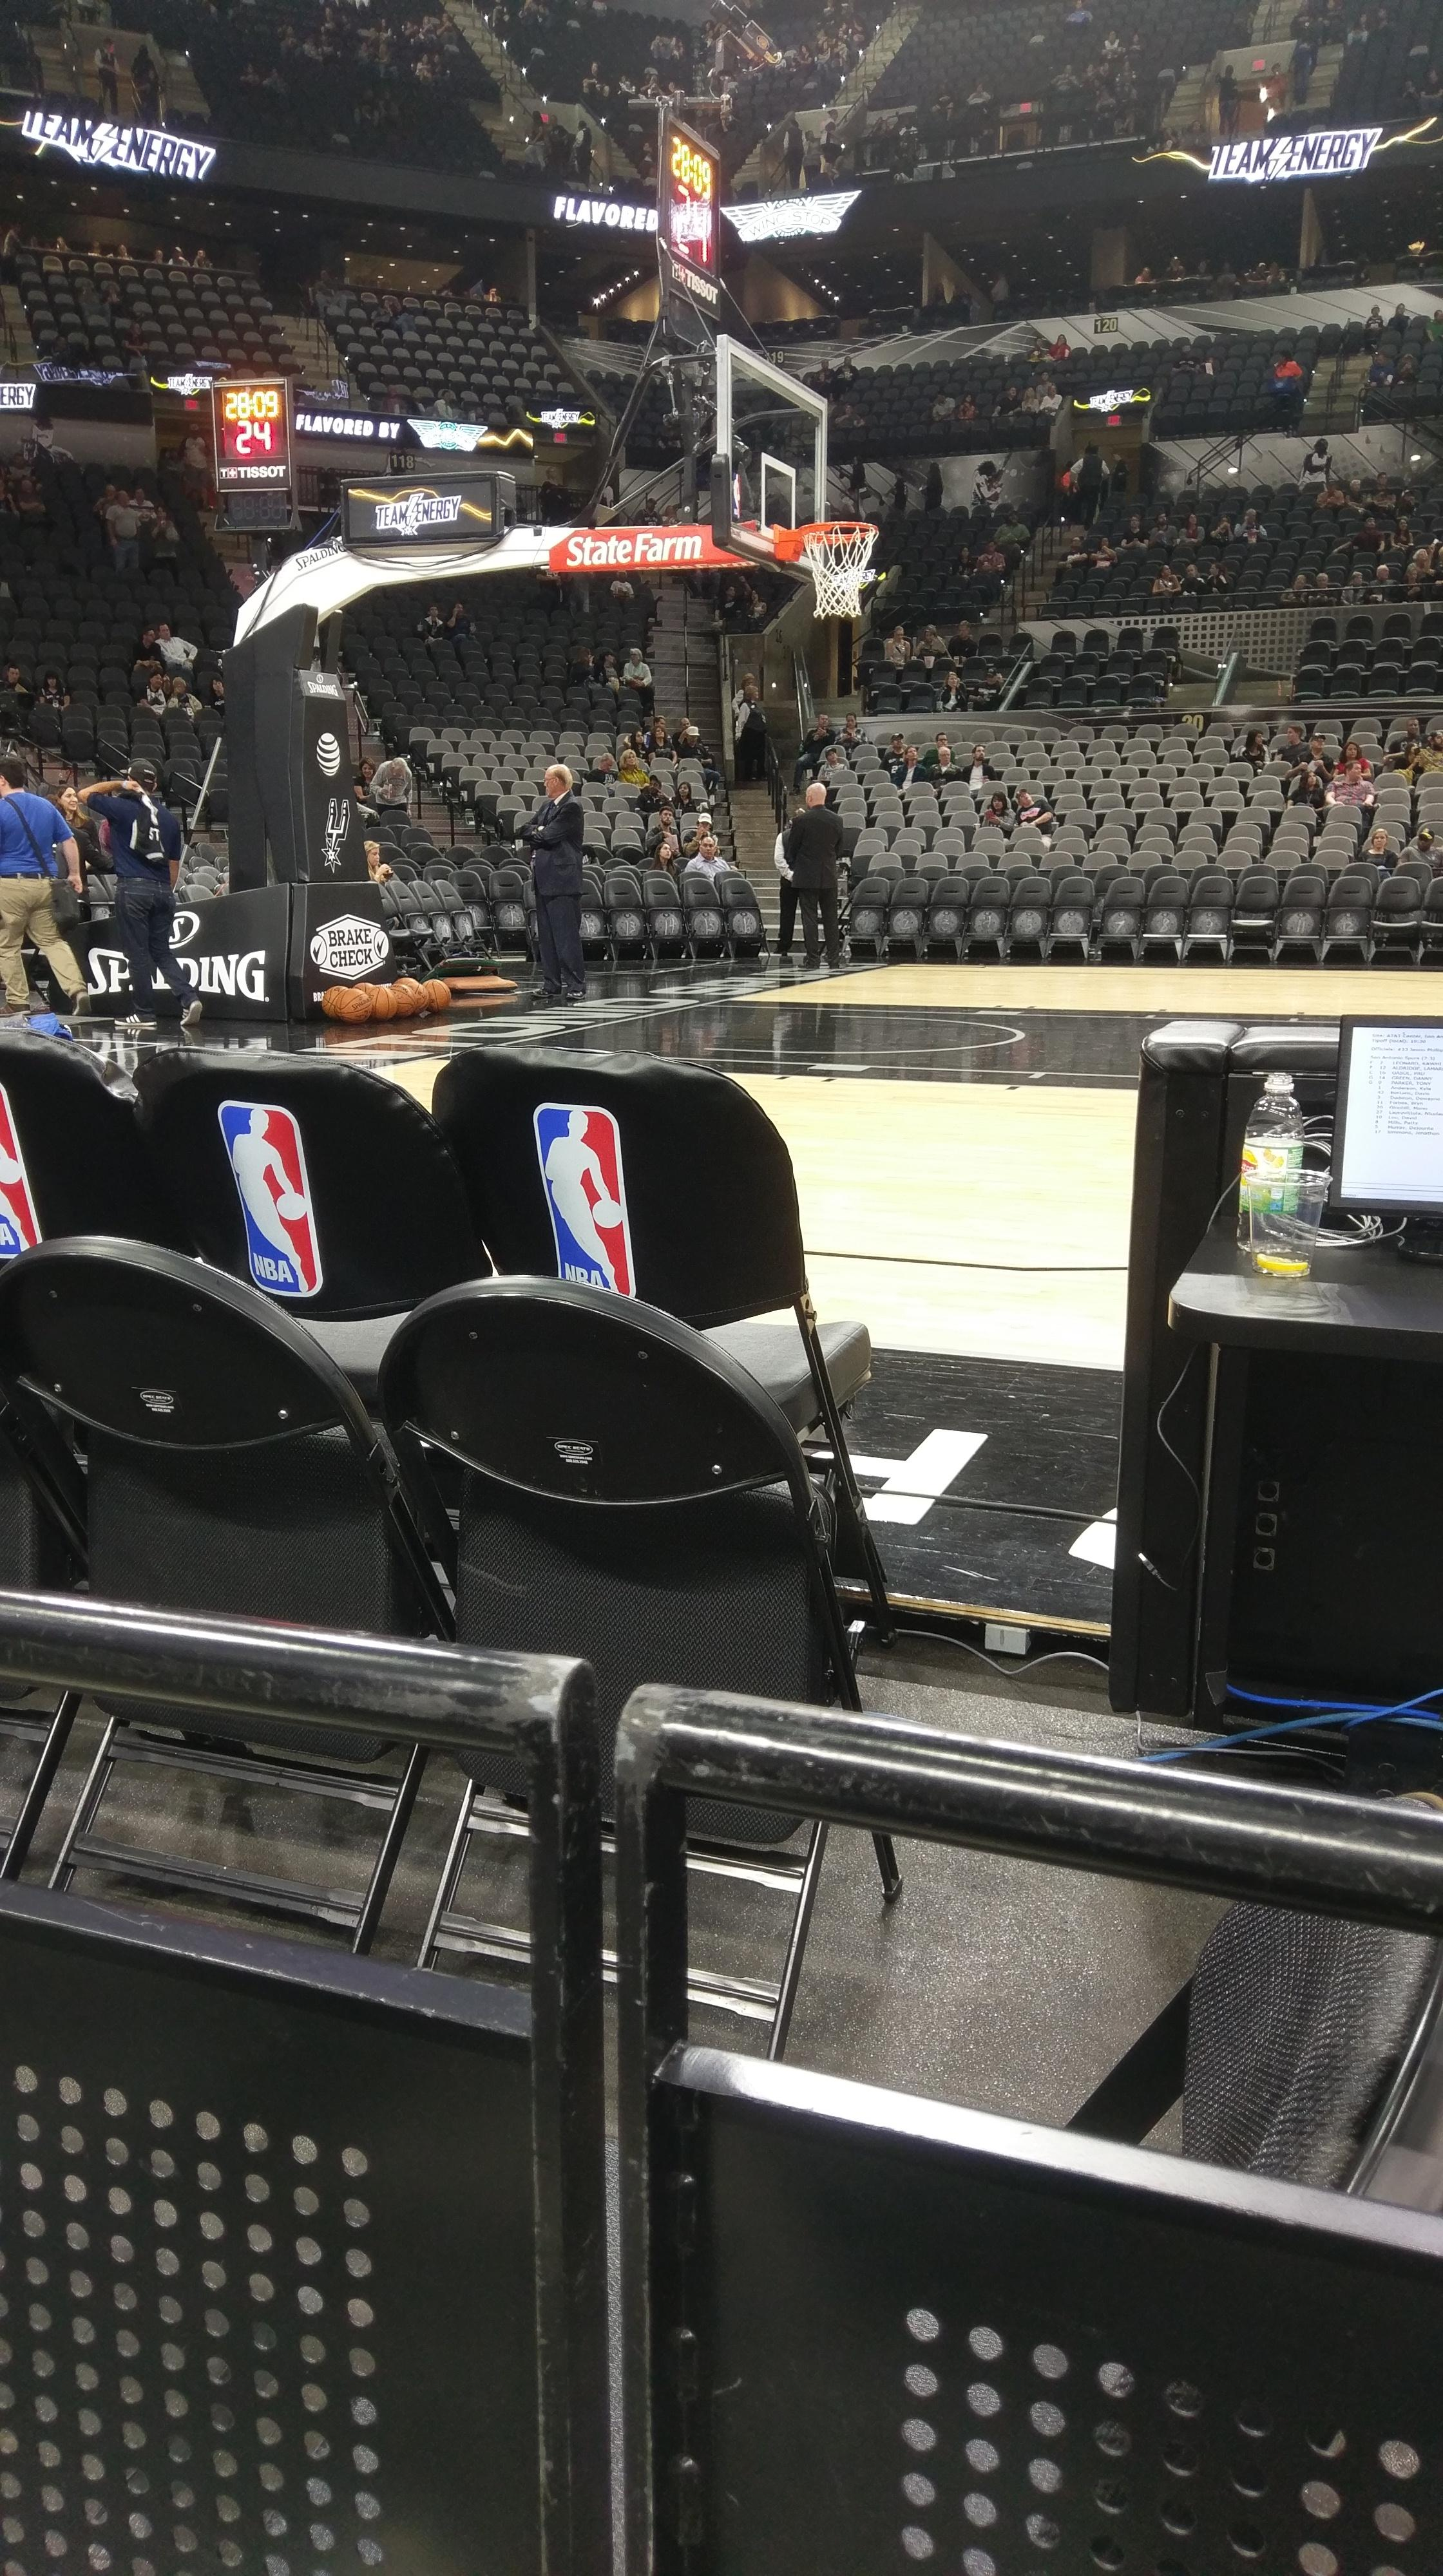 AT&T Center Section 10 Row 4 Seat 6